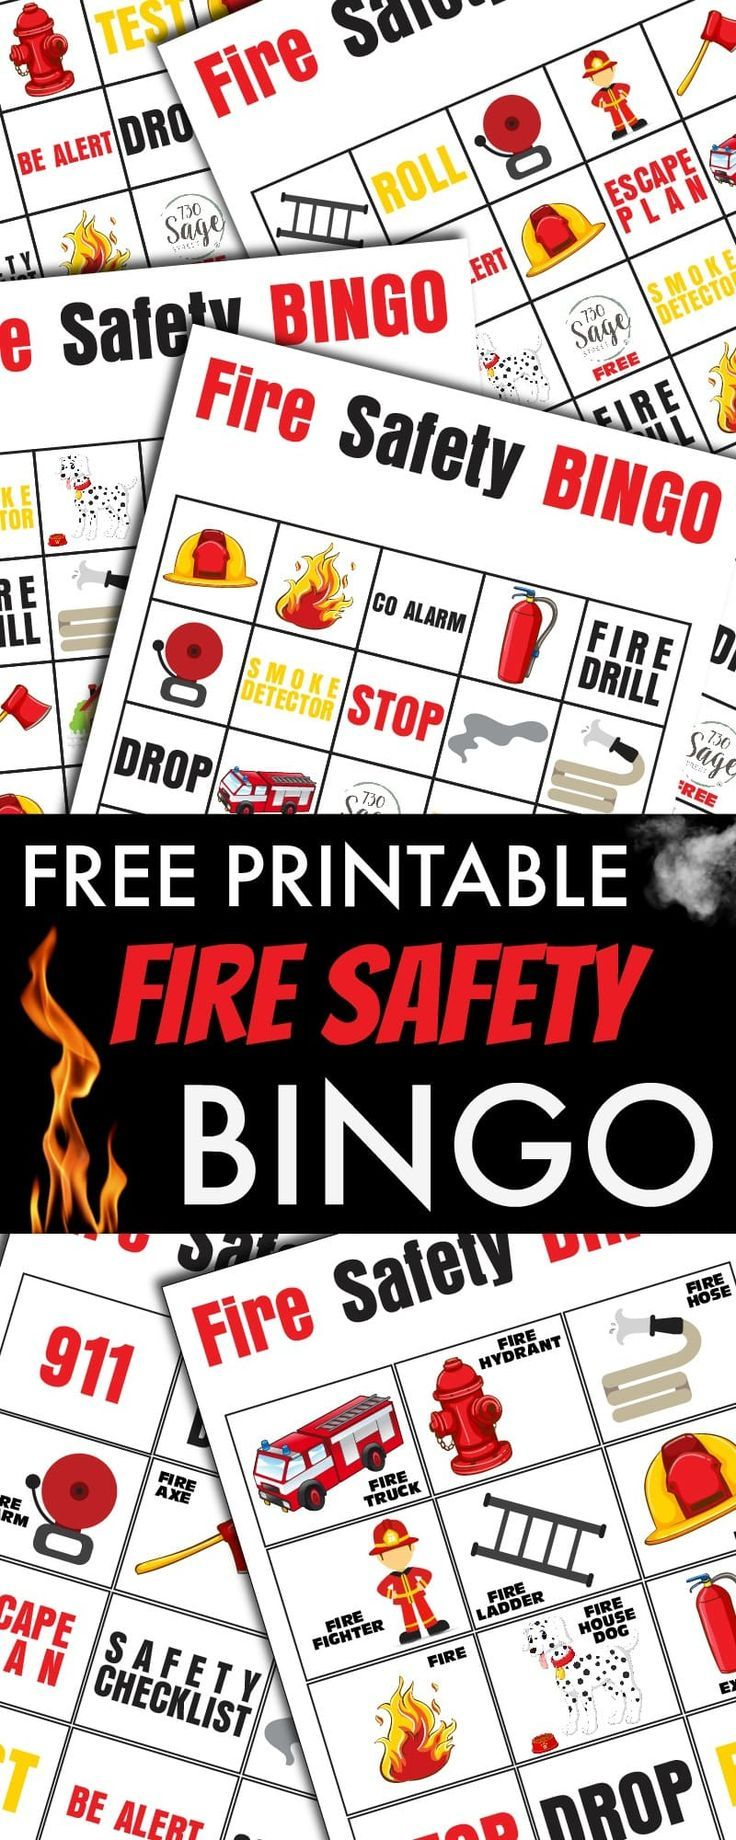 Fire Safety Bingo October is Fire Prevention Month